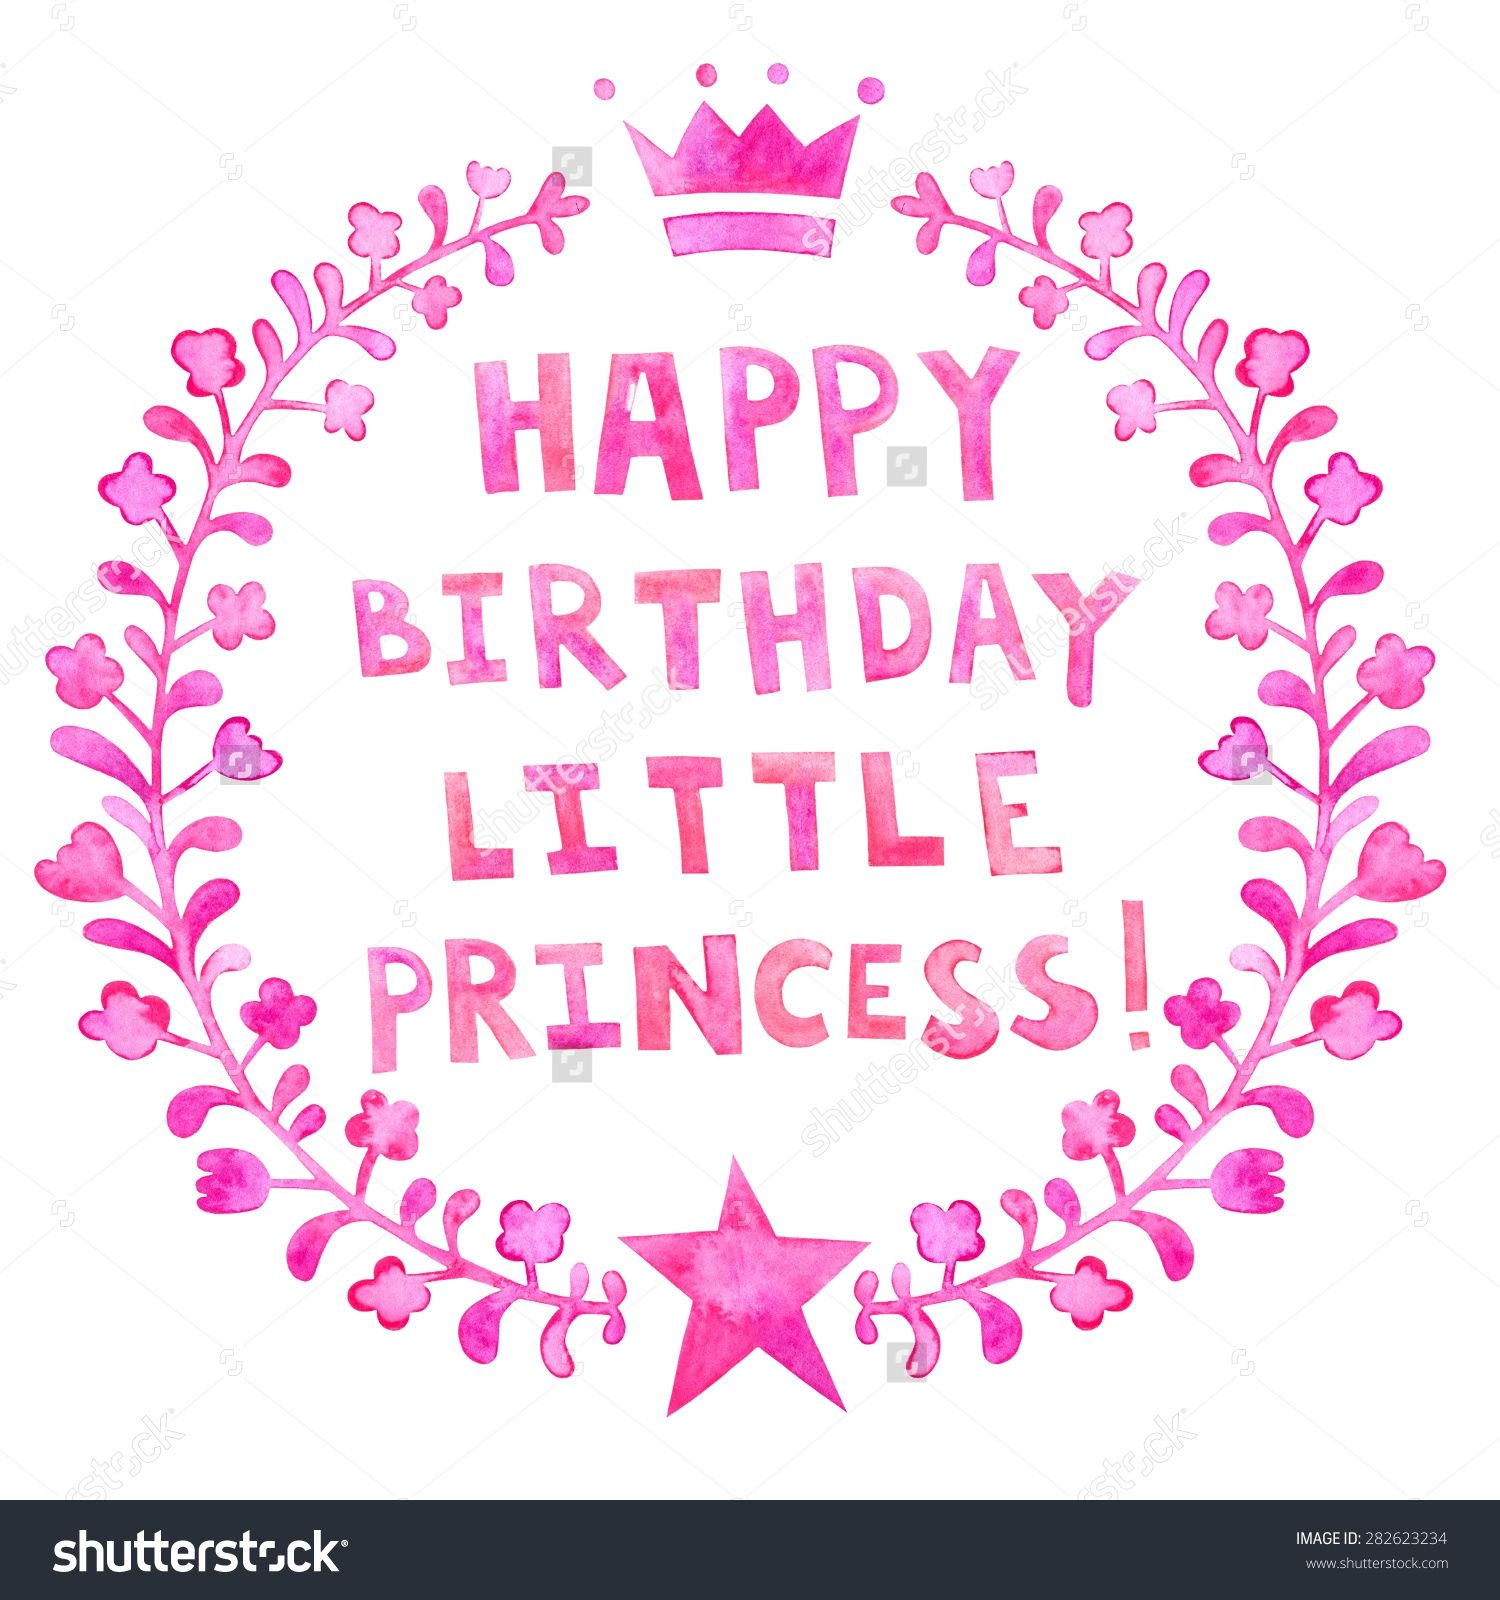 HBD Little Princess